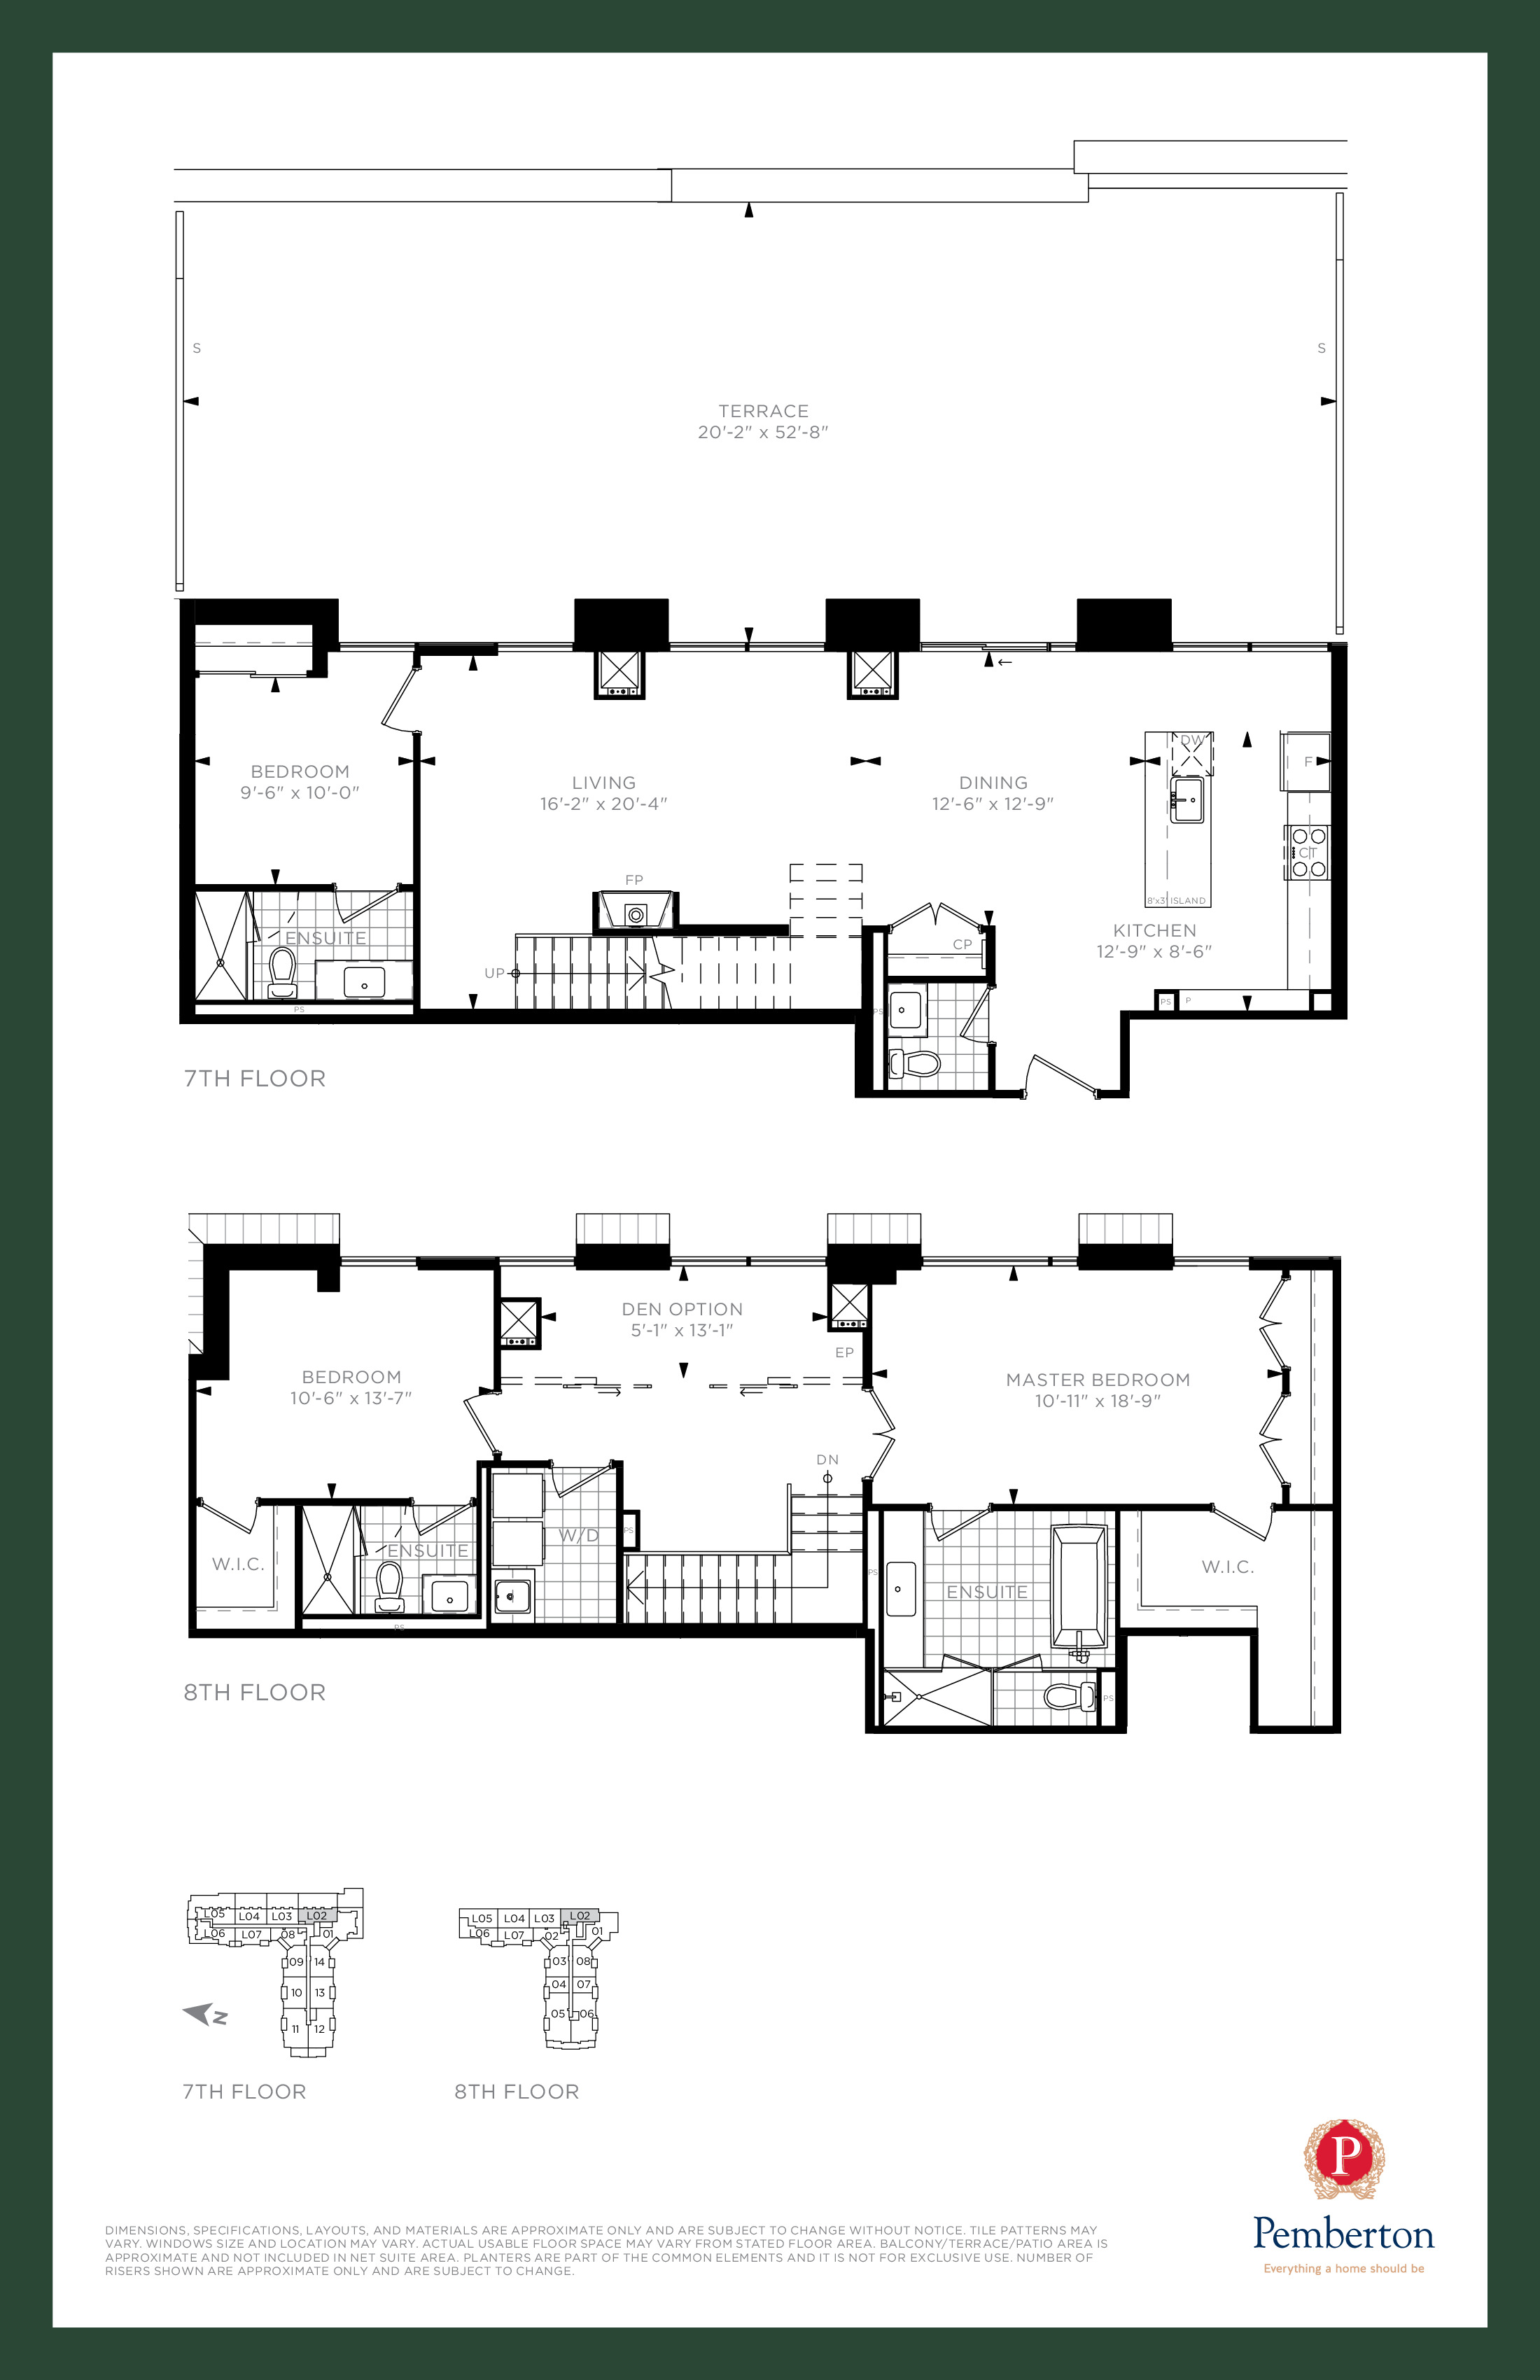 Loft A - Building A Floor Plan at 9th & Main Condos + Towns - 2050 sq.ft